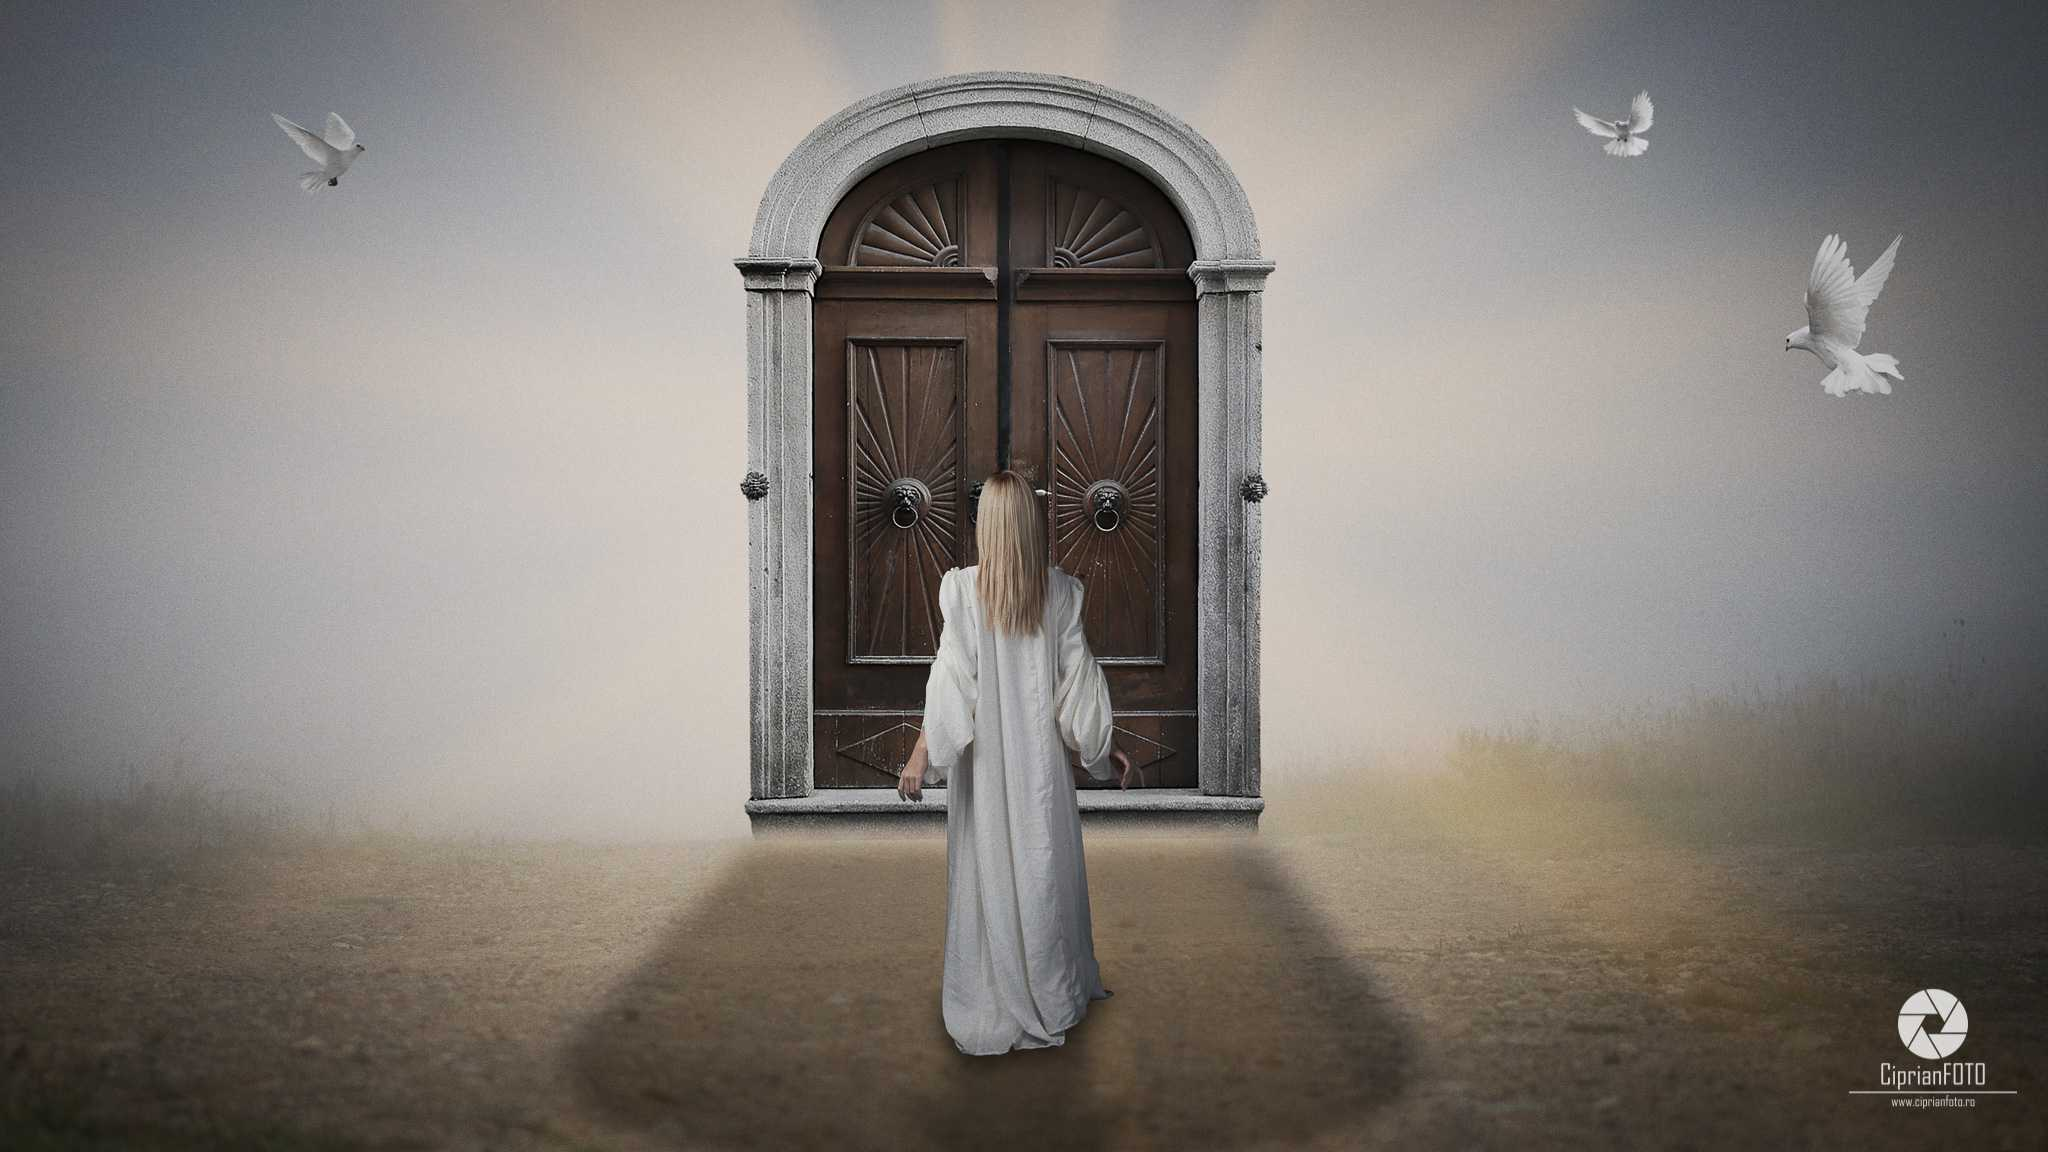 The Mysterious Door, Photoshop Manipulation Tutorial, CiprianFOTO